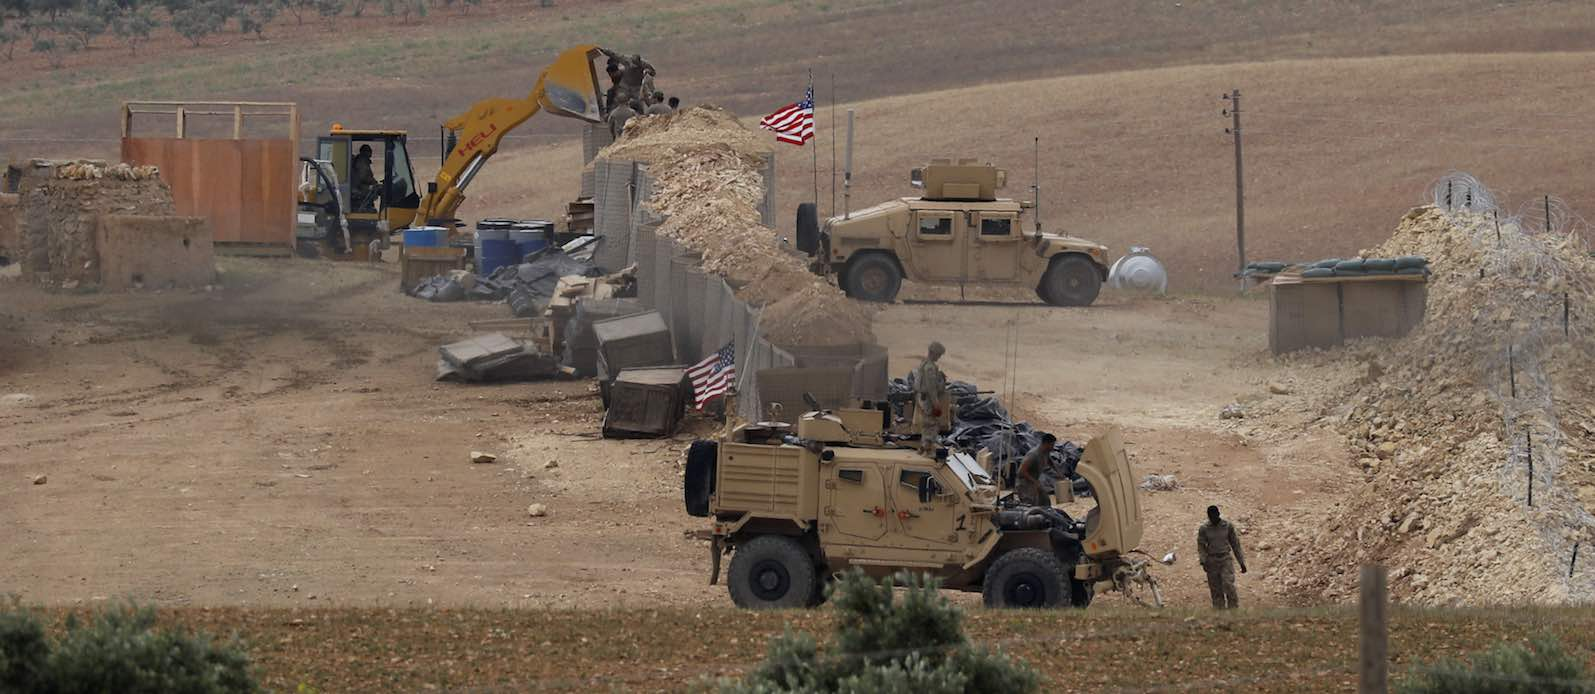 Vehicles and structures of US-backed coalition forces in the northern Syrian town of Manbij, in May (Photo: Delil Souleiman via Getty)